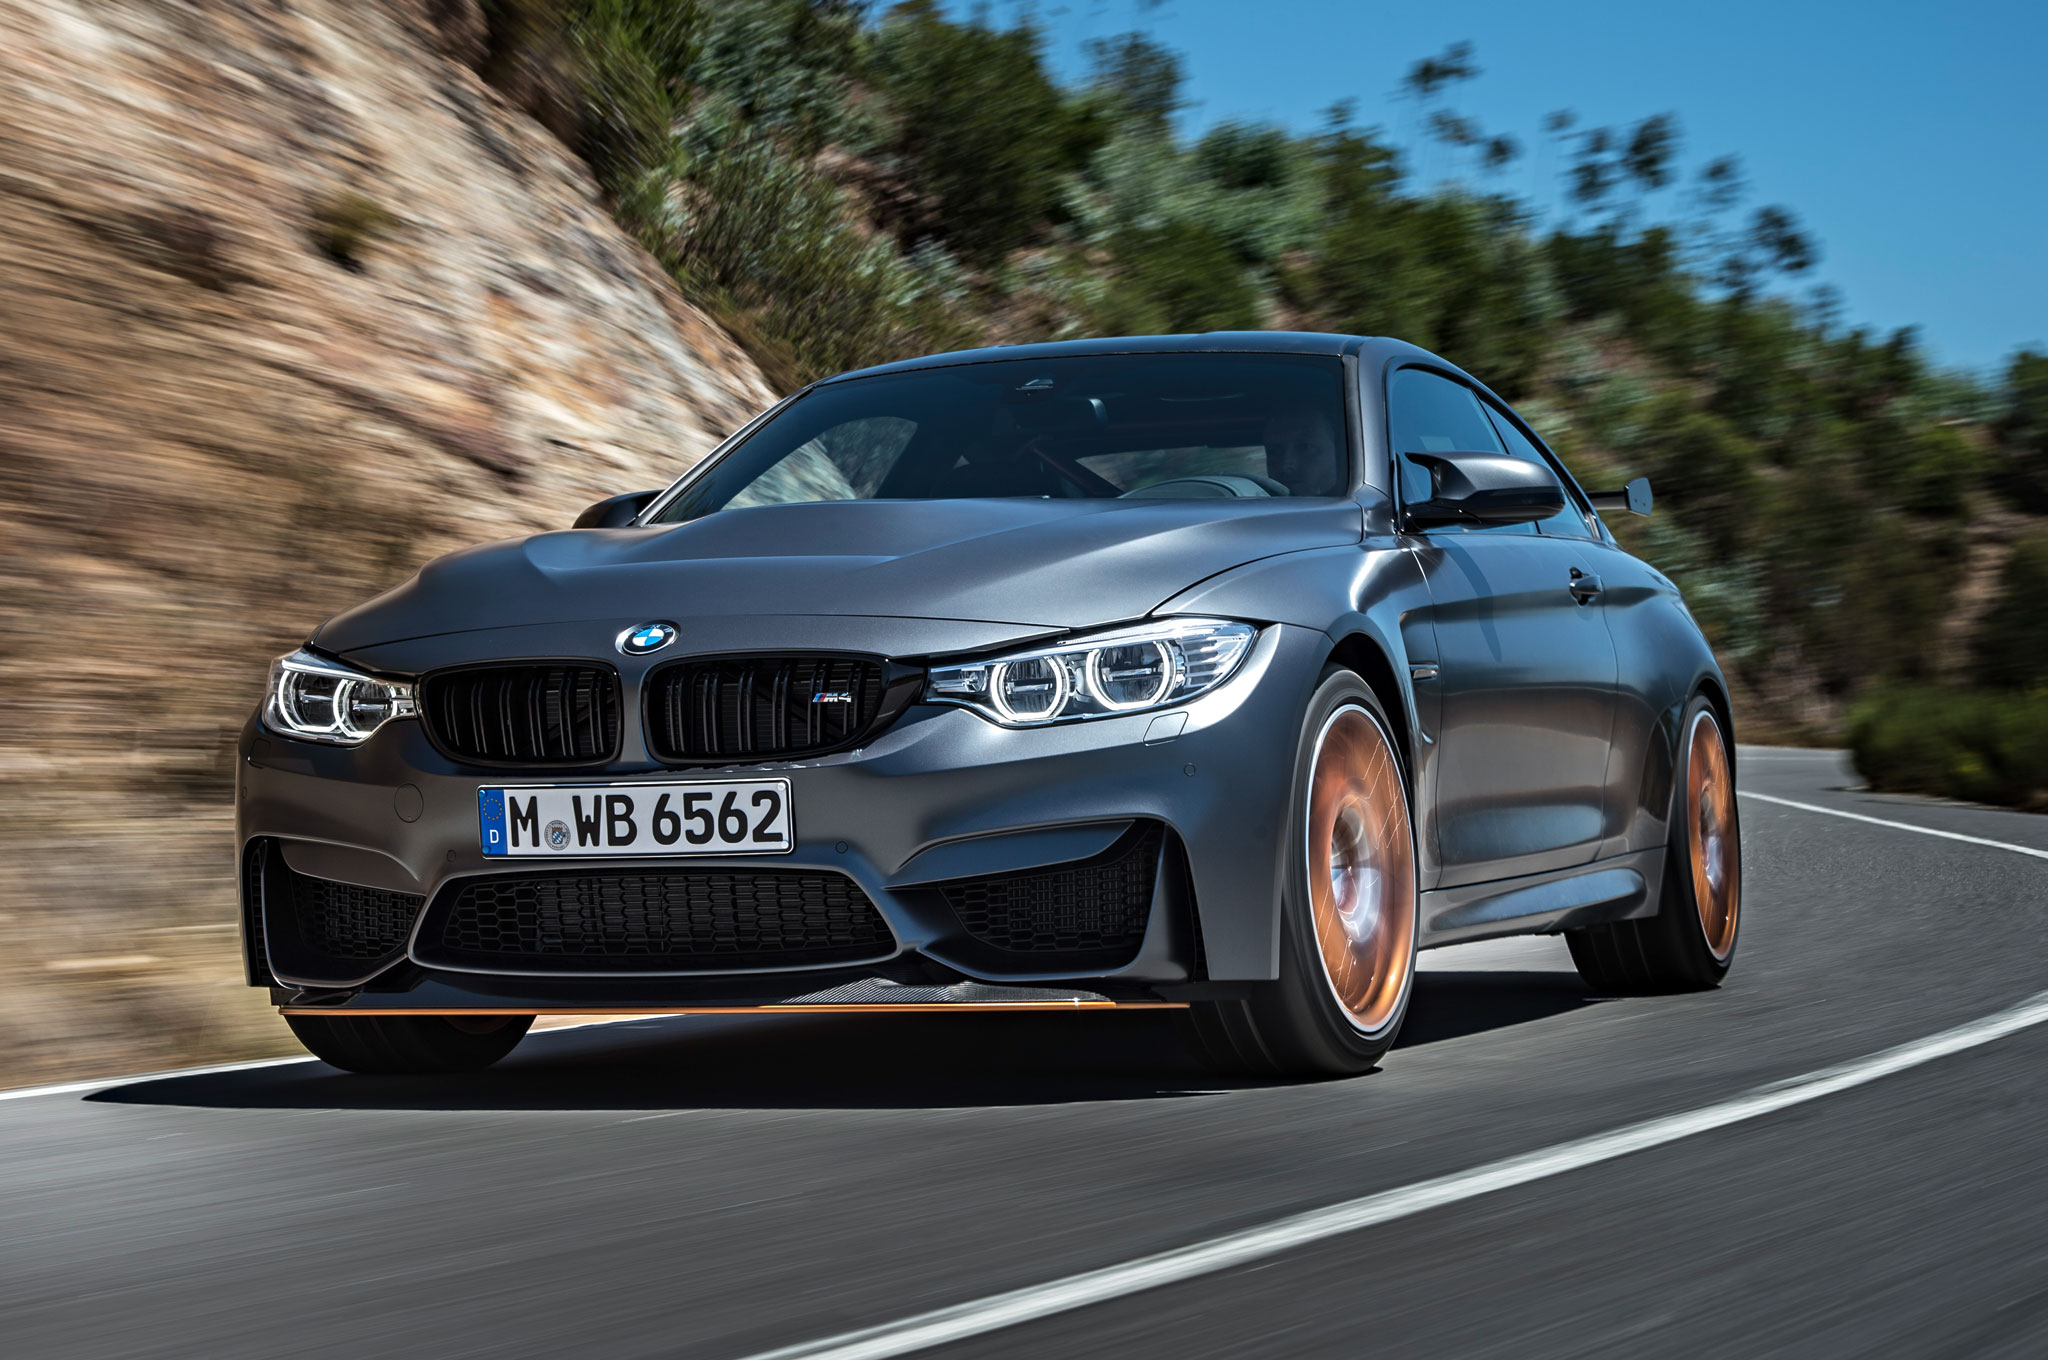 2016 bmw m4 gts is coming to the u.s. with nearly 500 hp